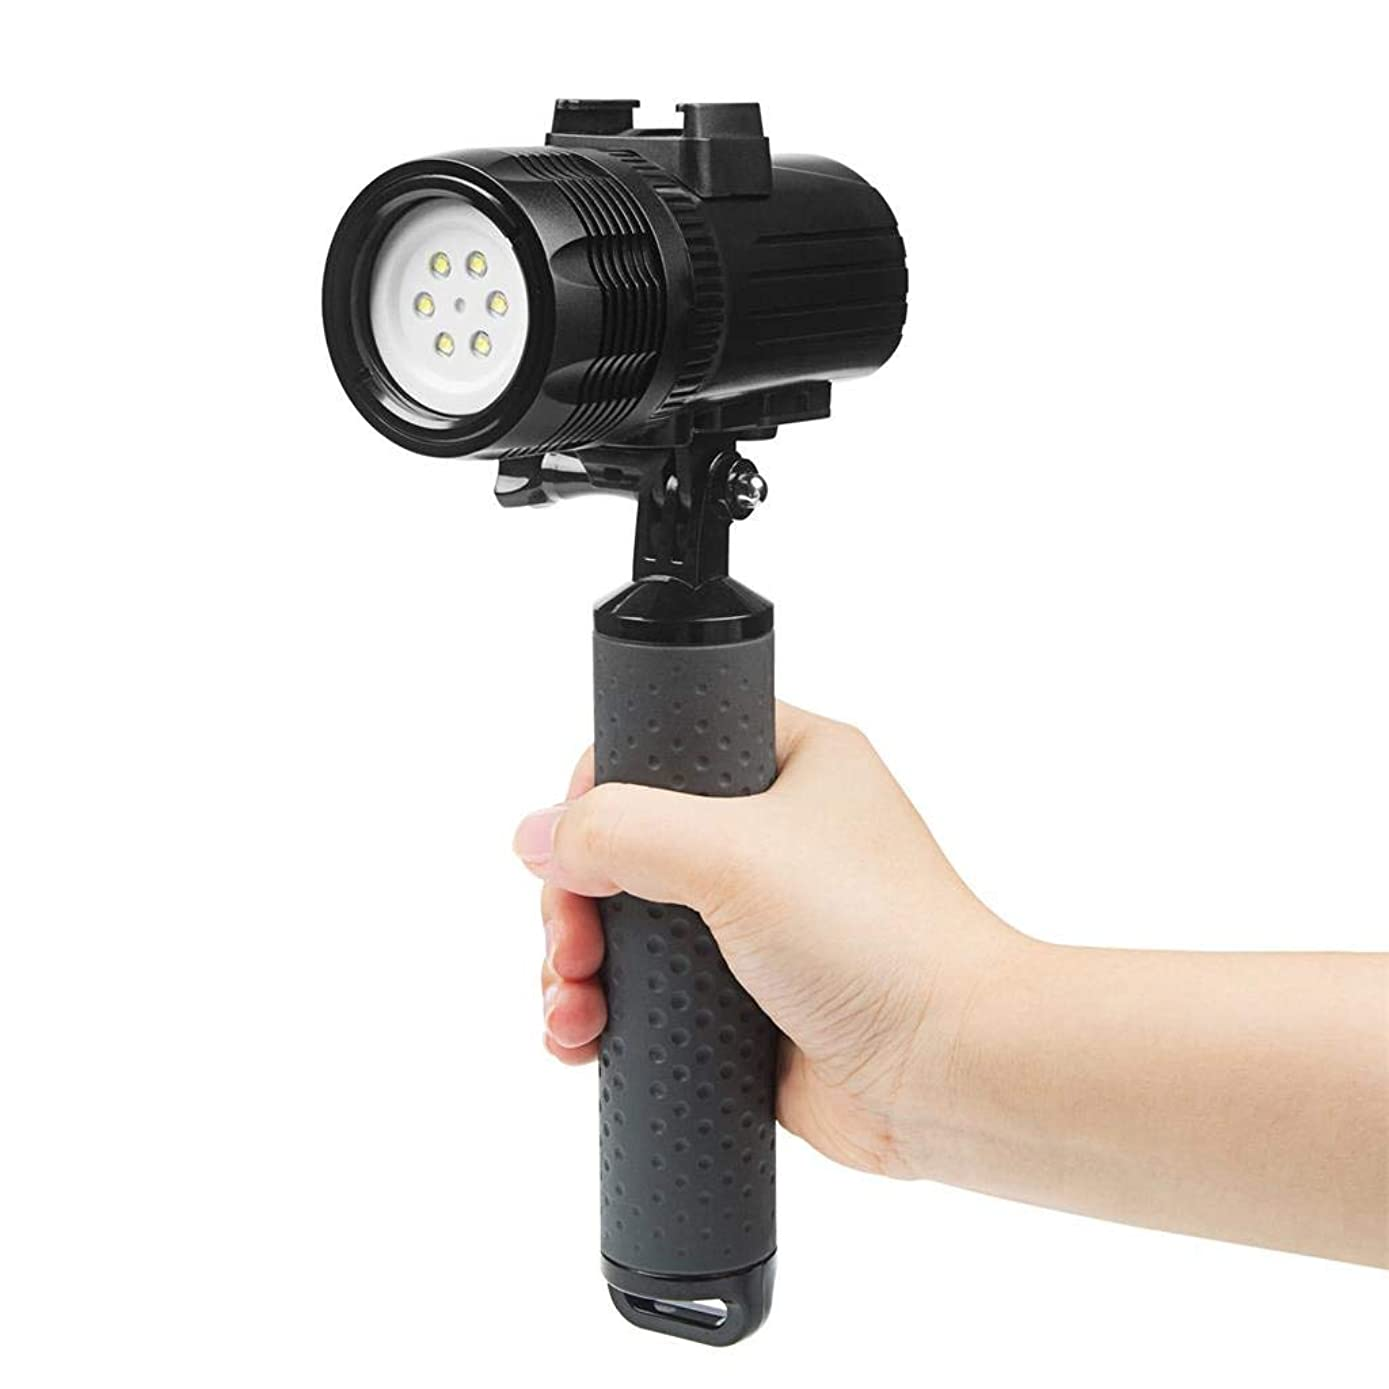 vmree ? Shoot 1000LM Underwater Diving Flashlight Torch Light for DJI Osmo Action for GoPro Hero 7 6 5 for Xiaomi mija for 4 k Sjcam Action Video Camera Accessory